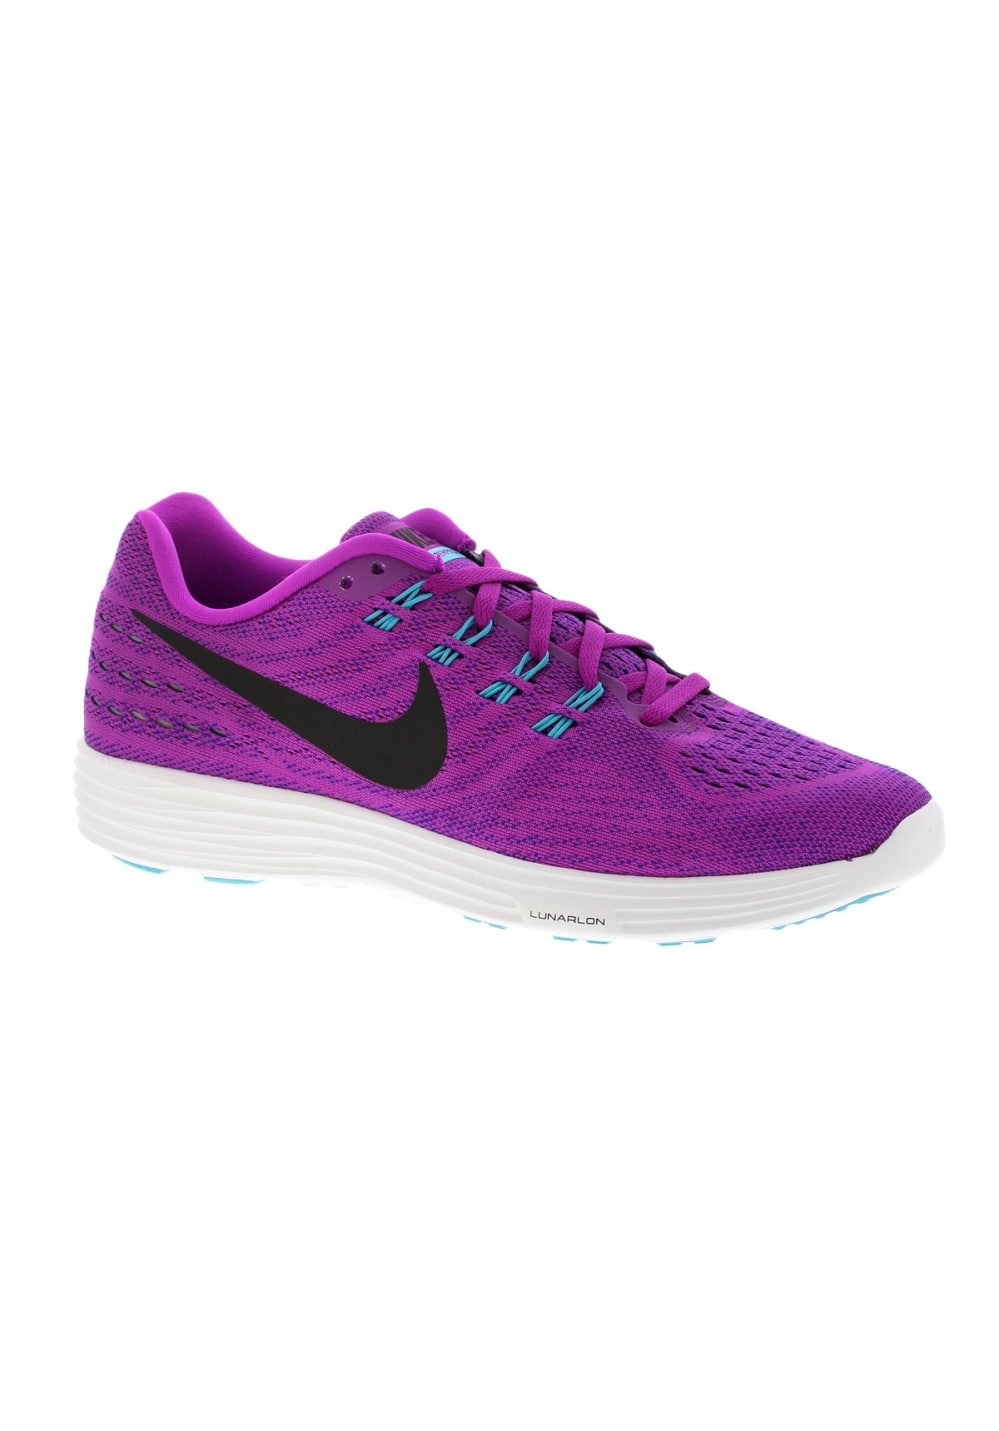 size 40 4f315 f7cea Nike Lunartempo 2 - Chaussures running pour Femme - Violet   21RUN